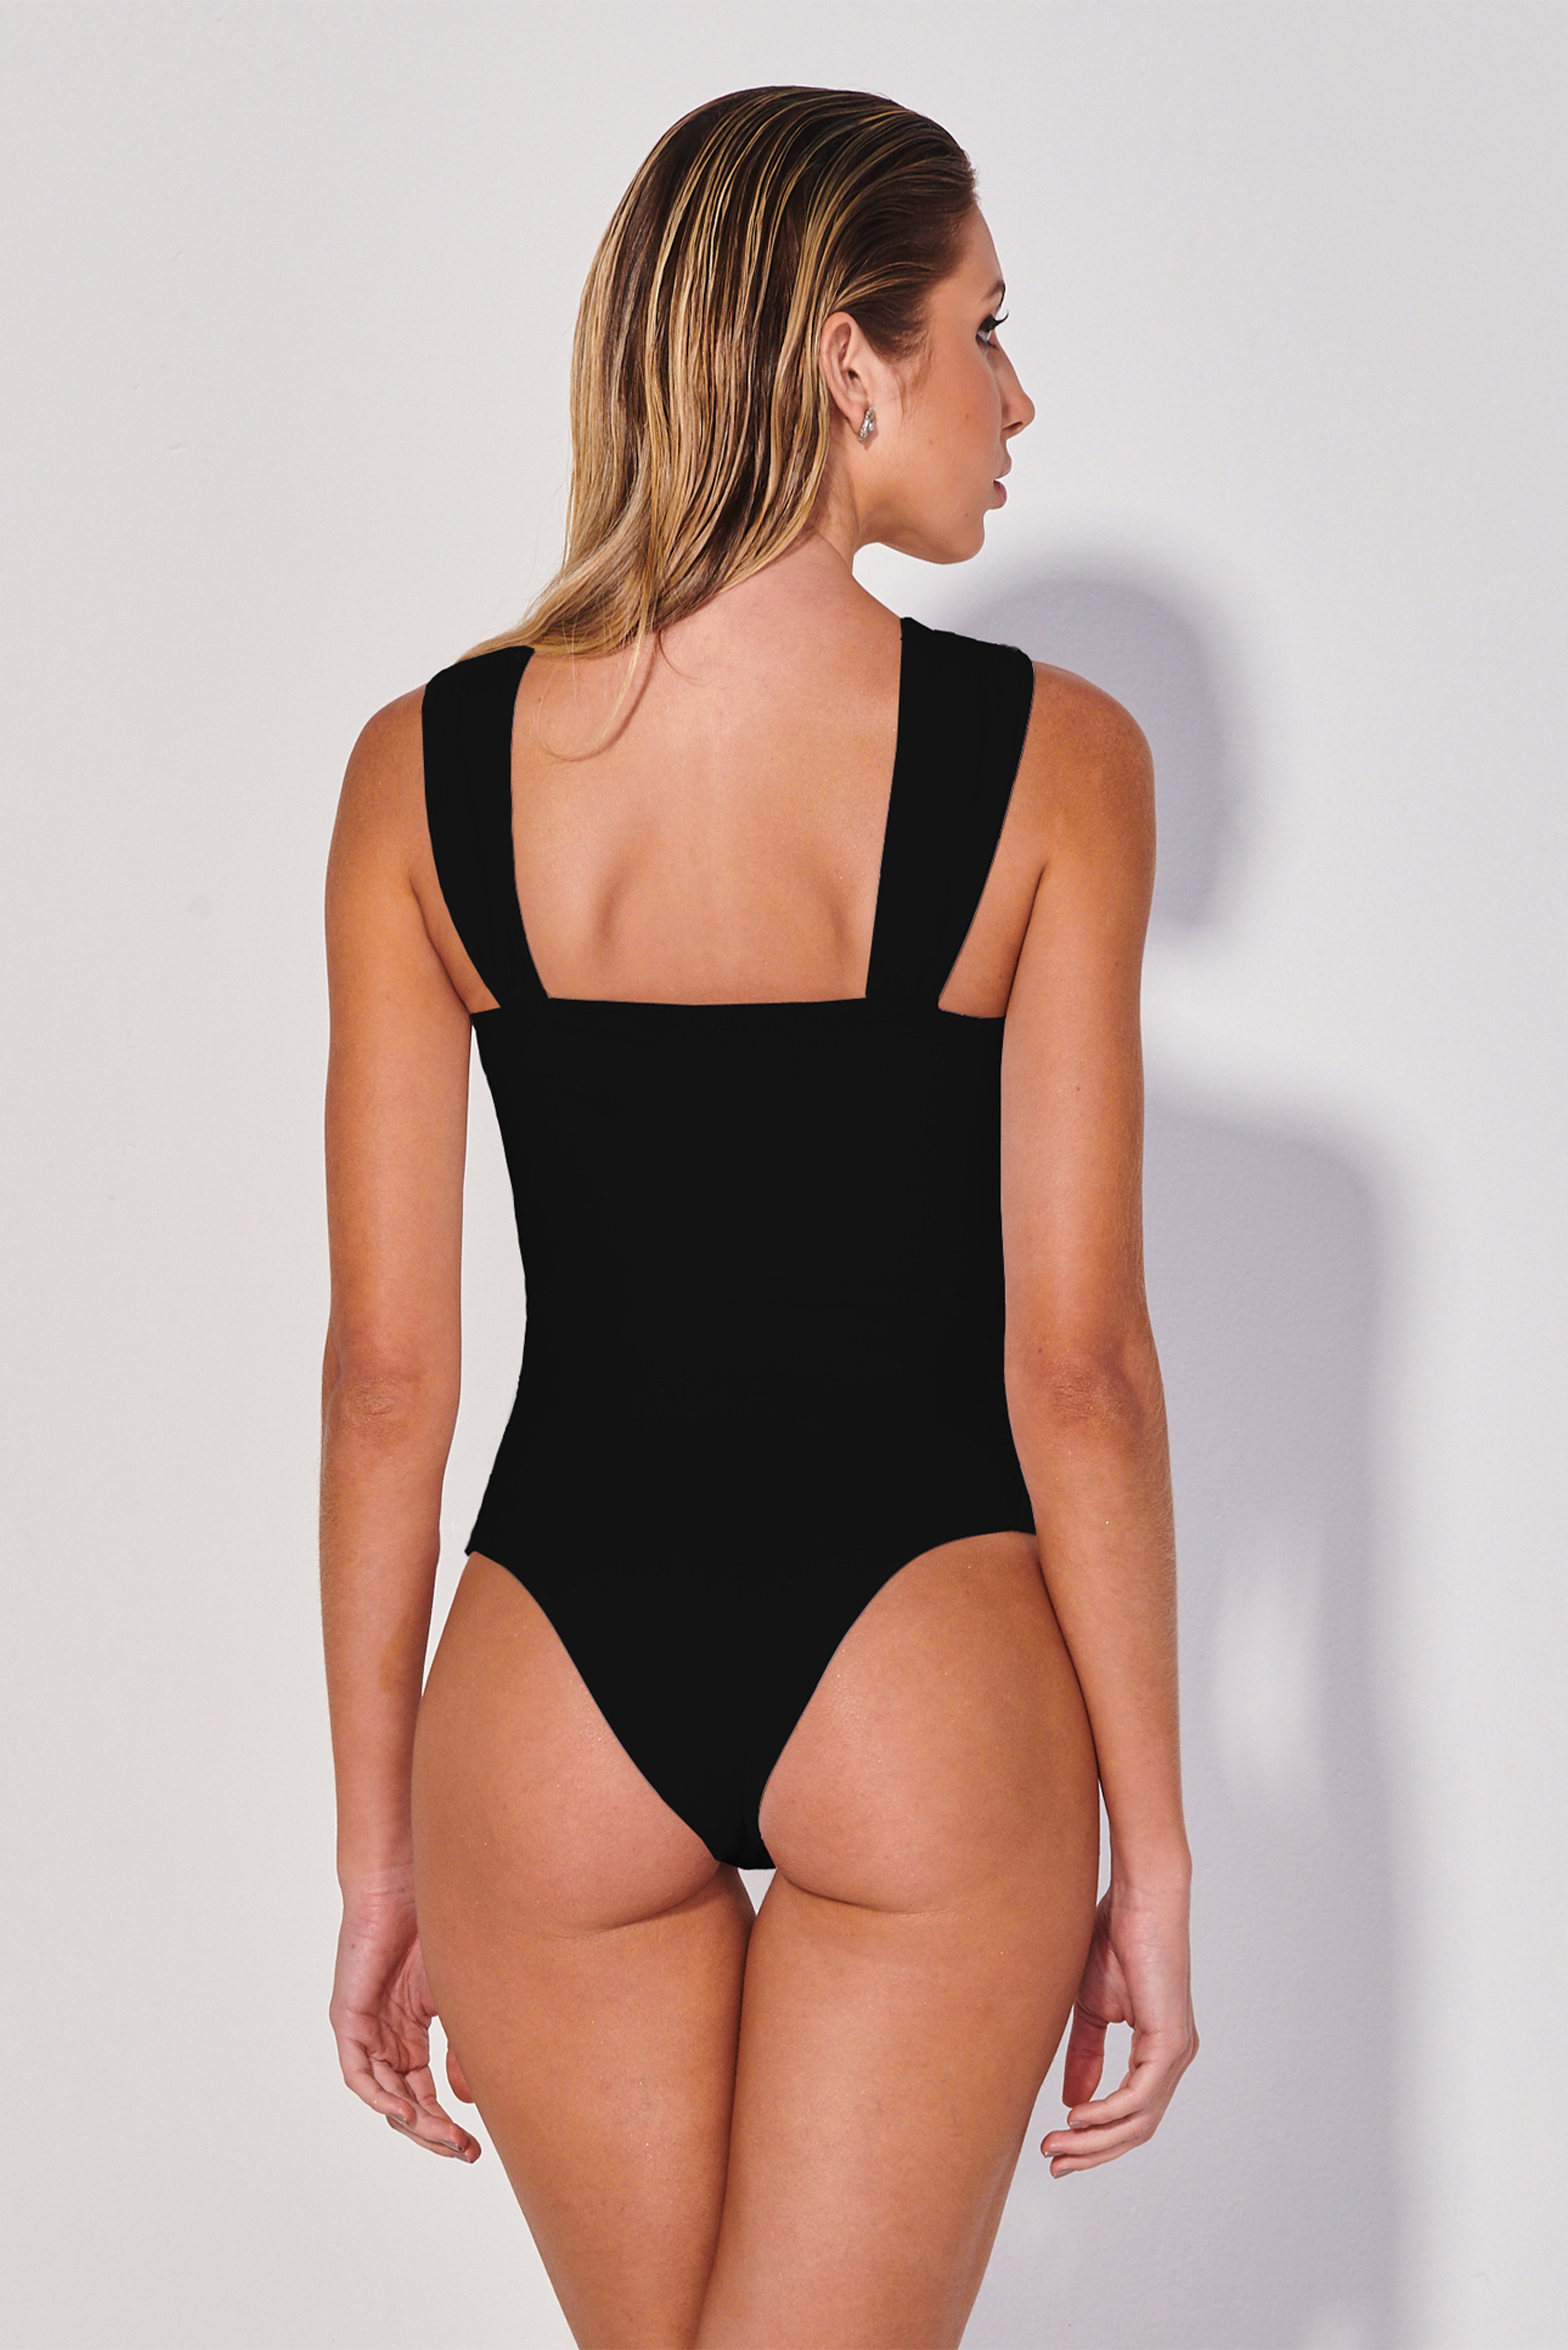 Body Grafi Preto | Grafi One-Piece Black